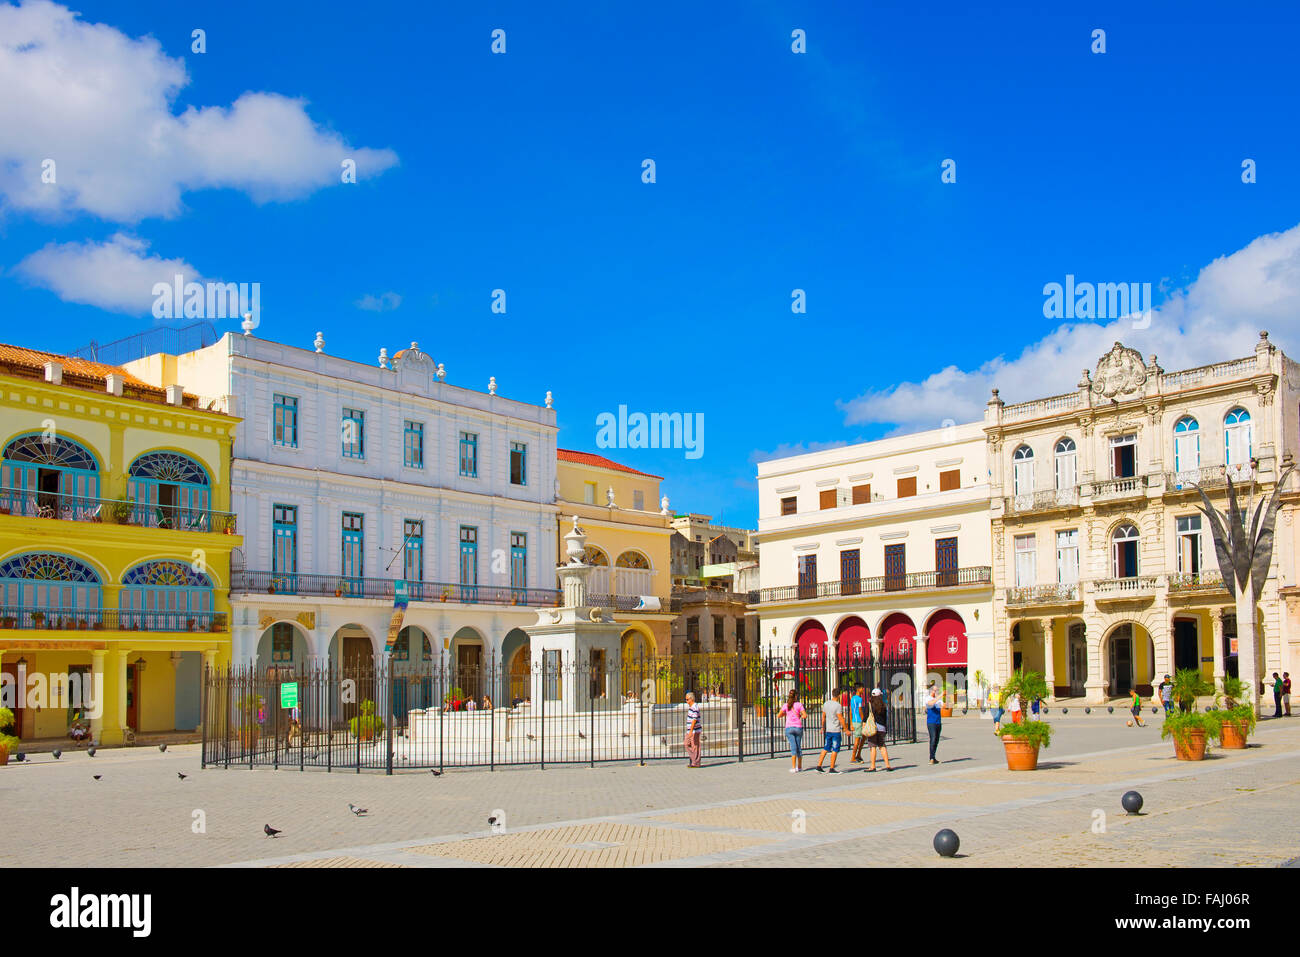 Plaza Vieja in Old Havana, Cuba - Stock Image